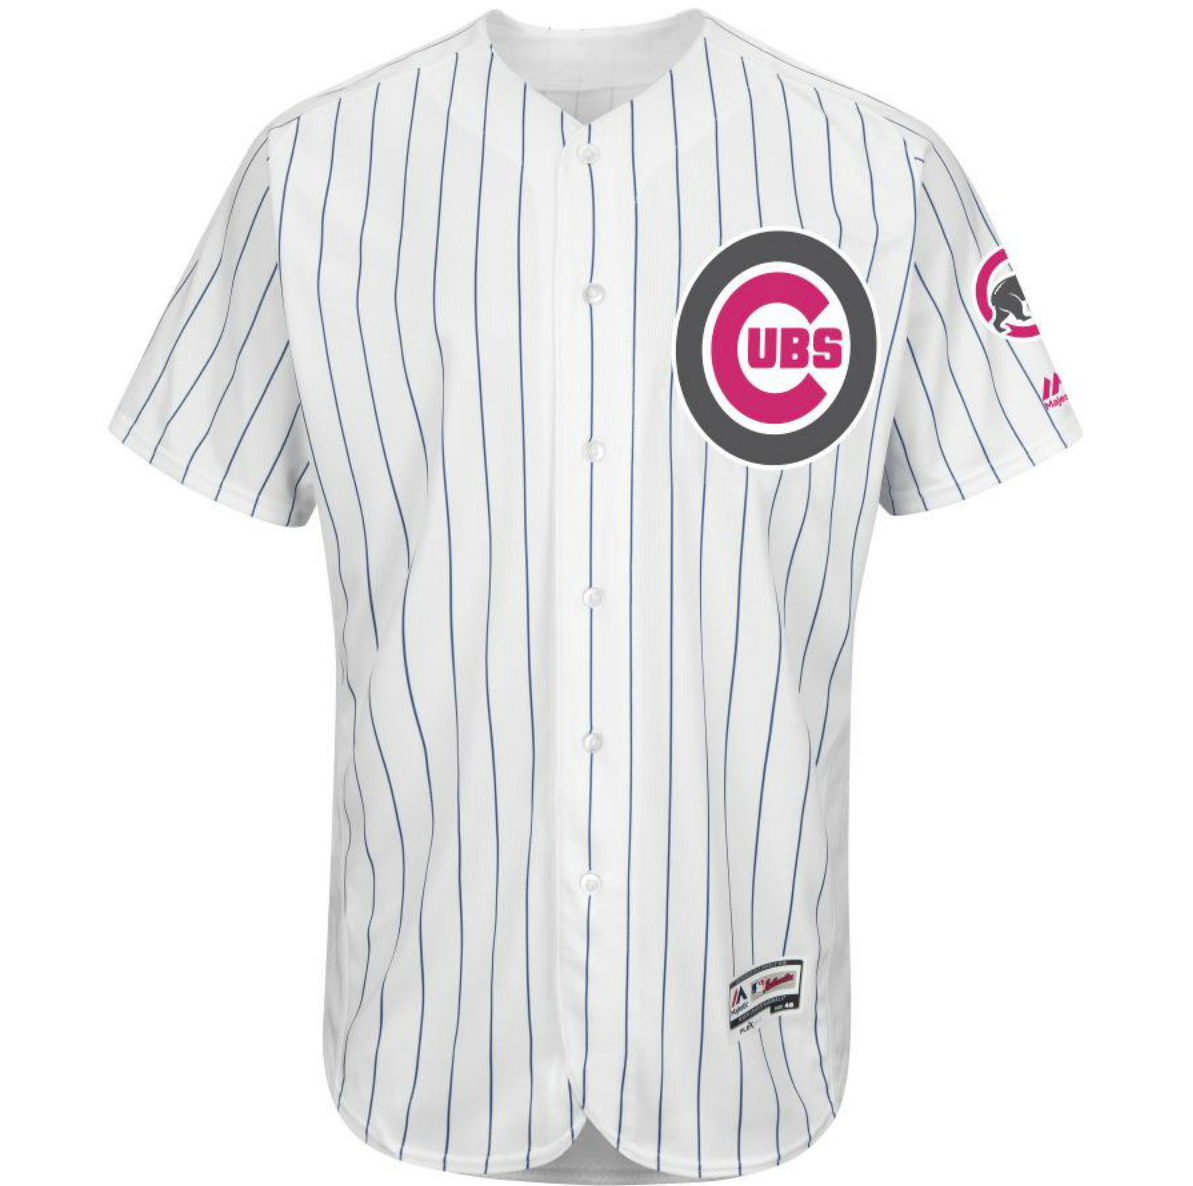 63089dc5 MLB Releases 2016 Special Event Jerseys And Caps - Bleed Cubbie Blue